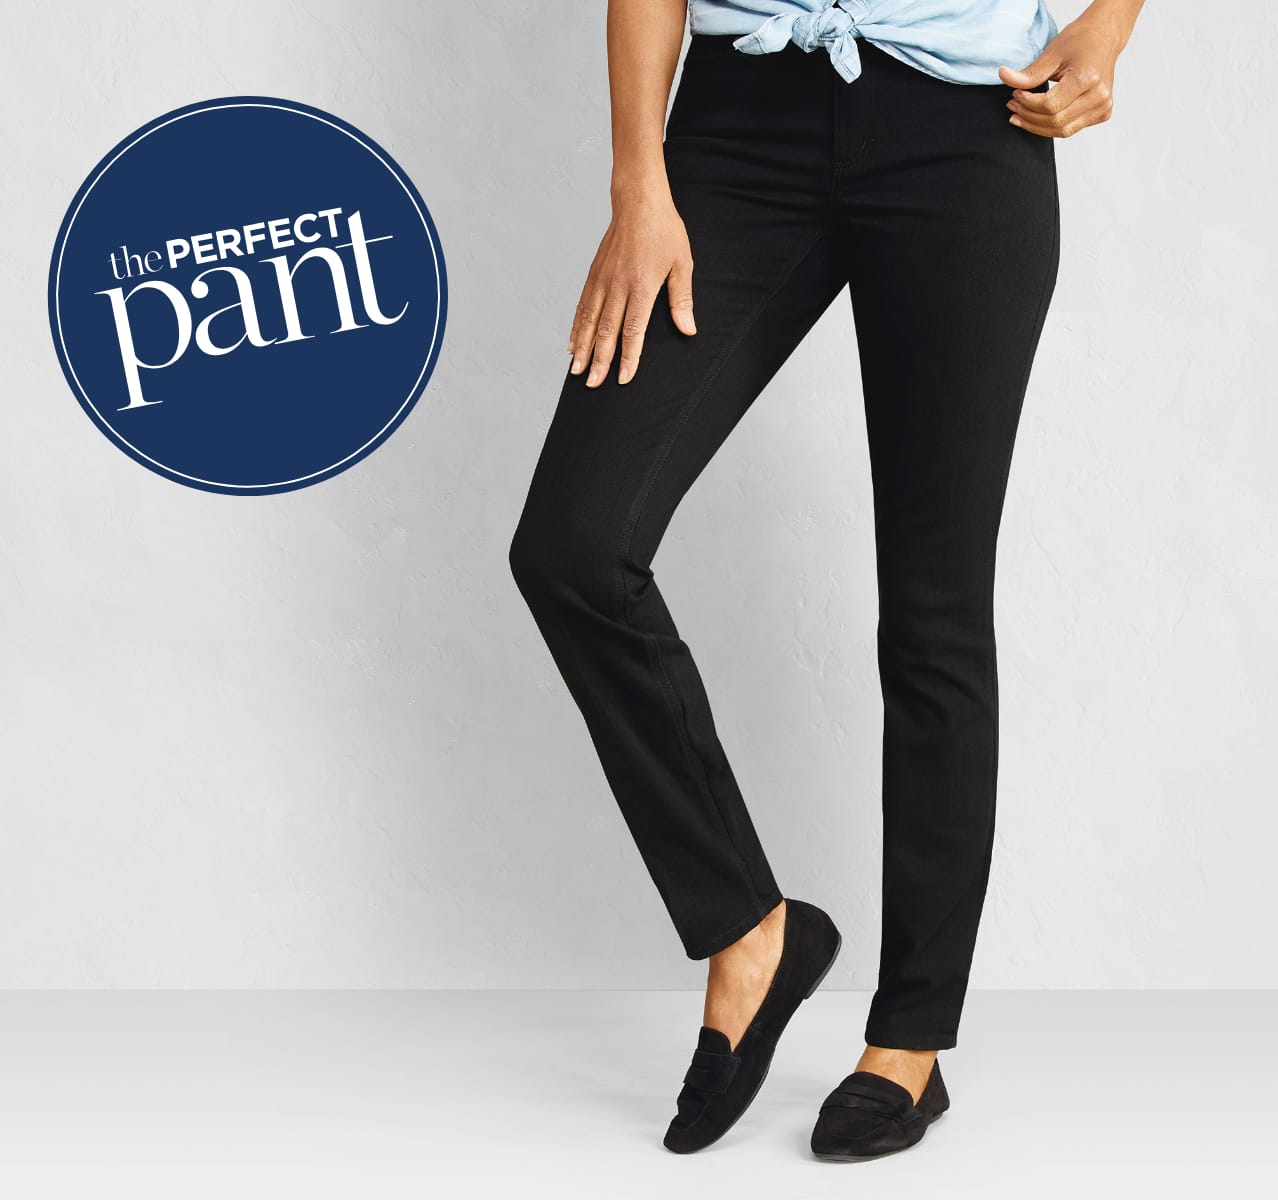 The Perfect Pant: Find Your Fit.